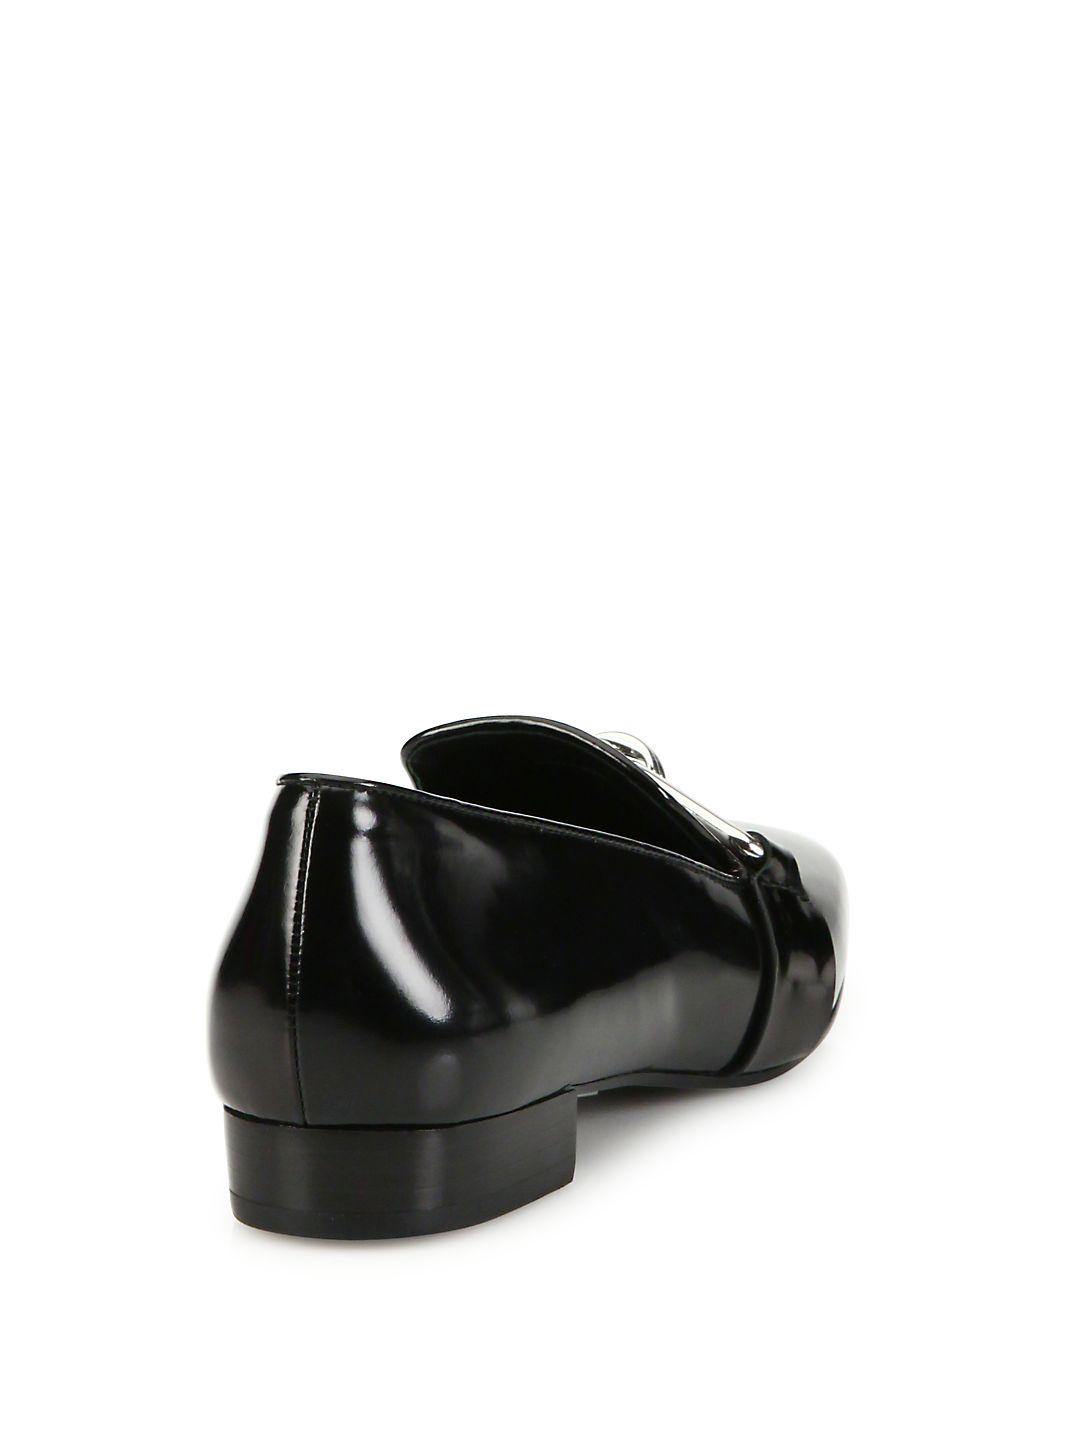 7a0c12db2d326 Lyst - Michael Kors Lennox Patent Leather Loafers in Black